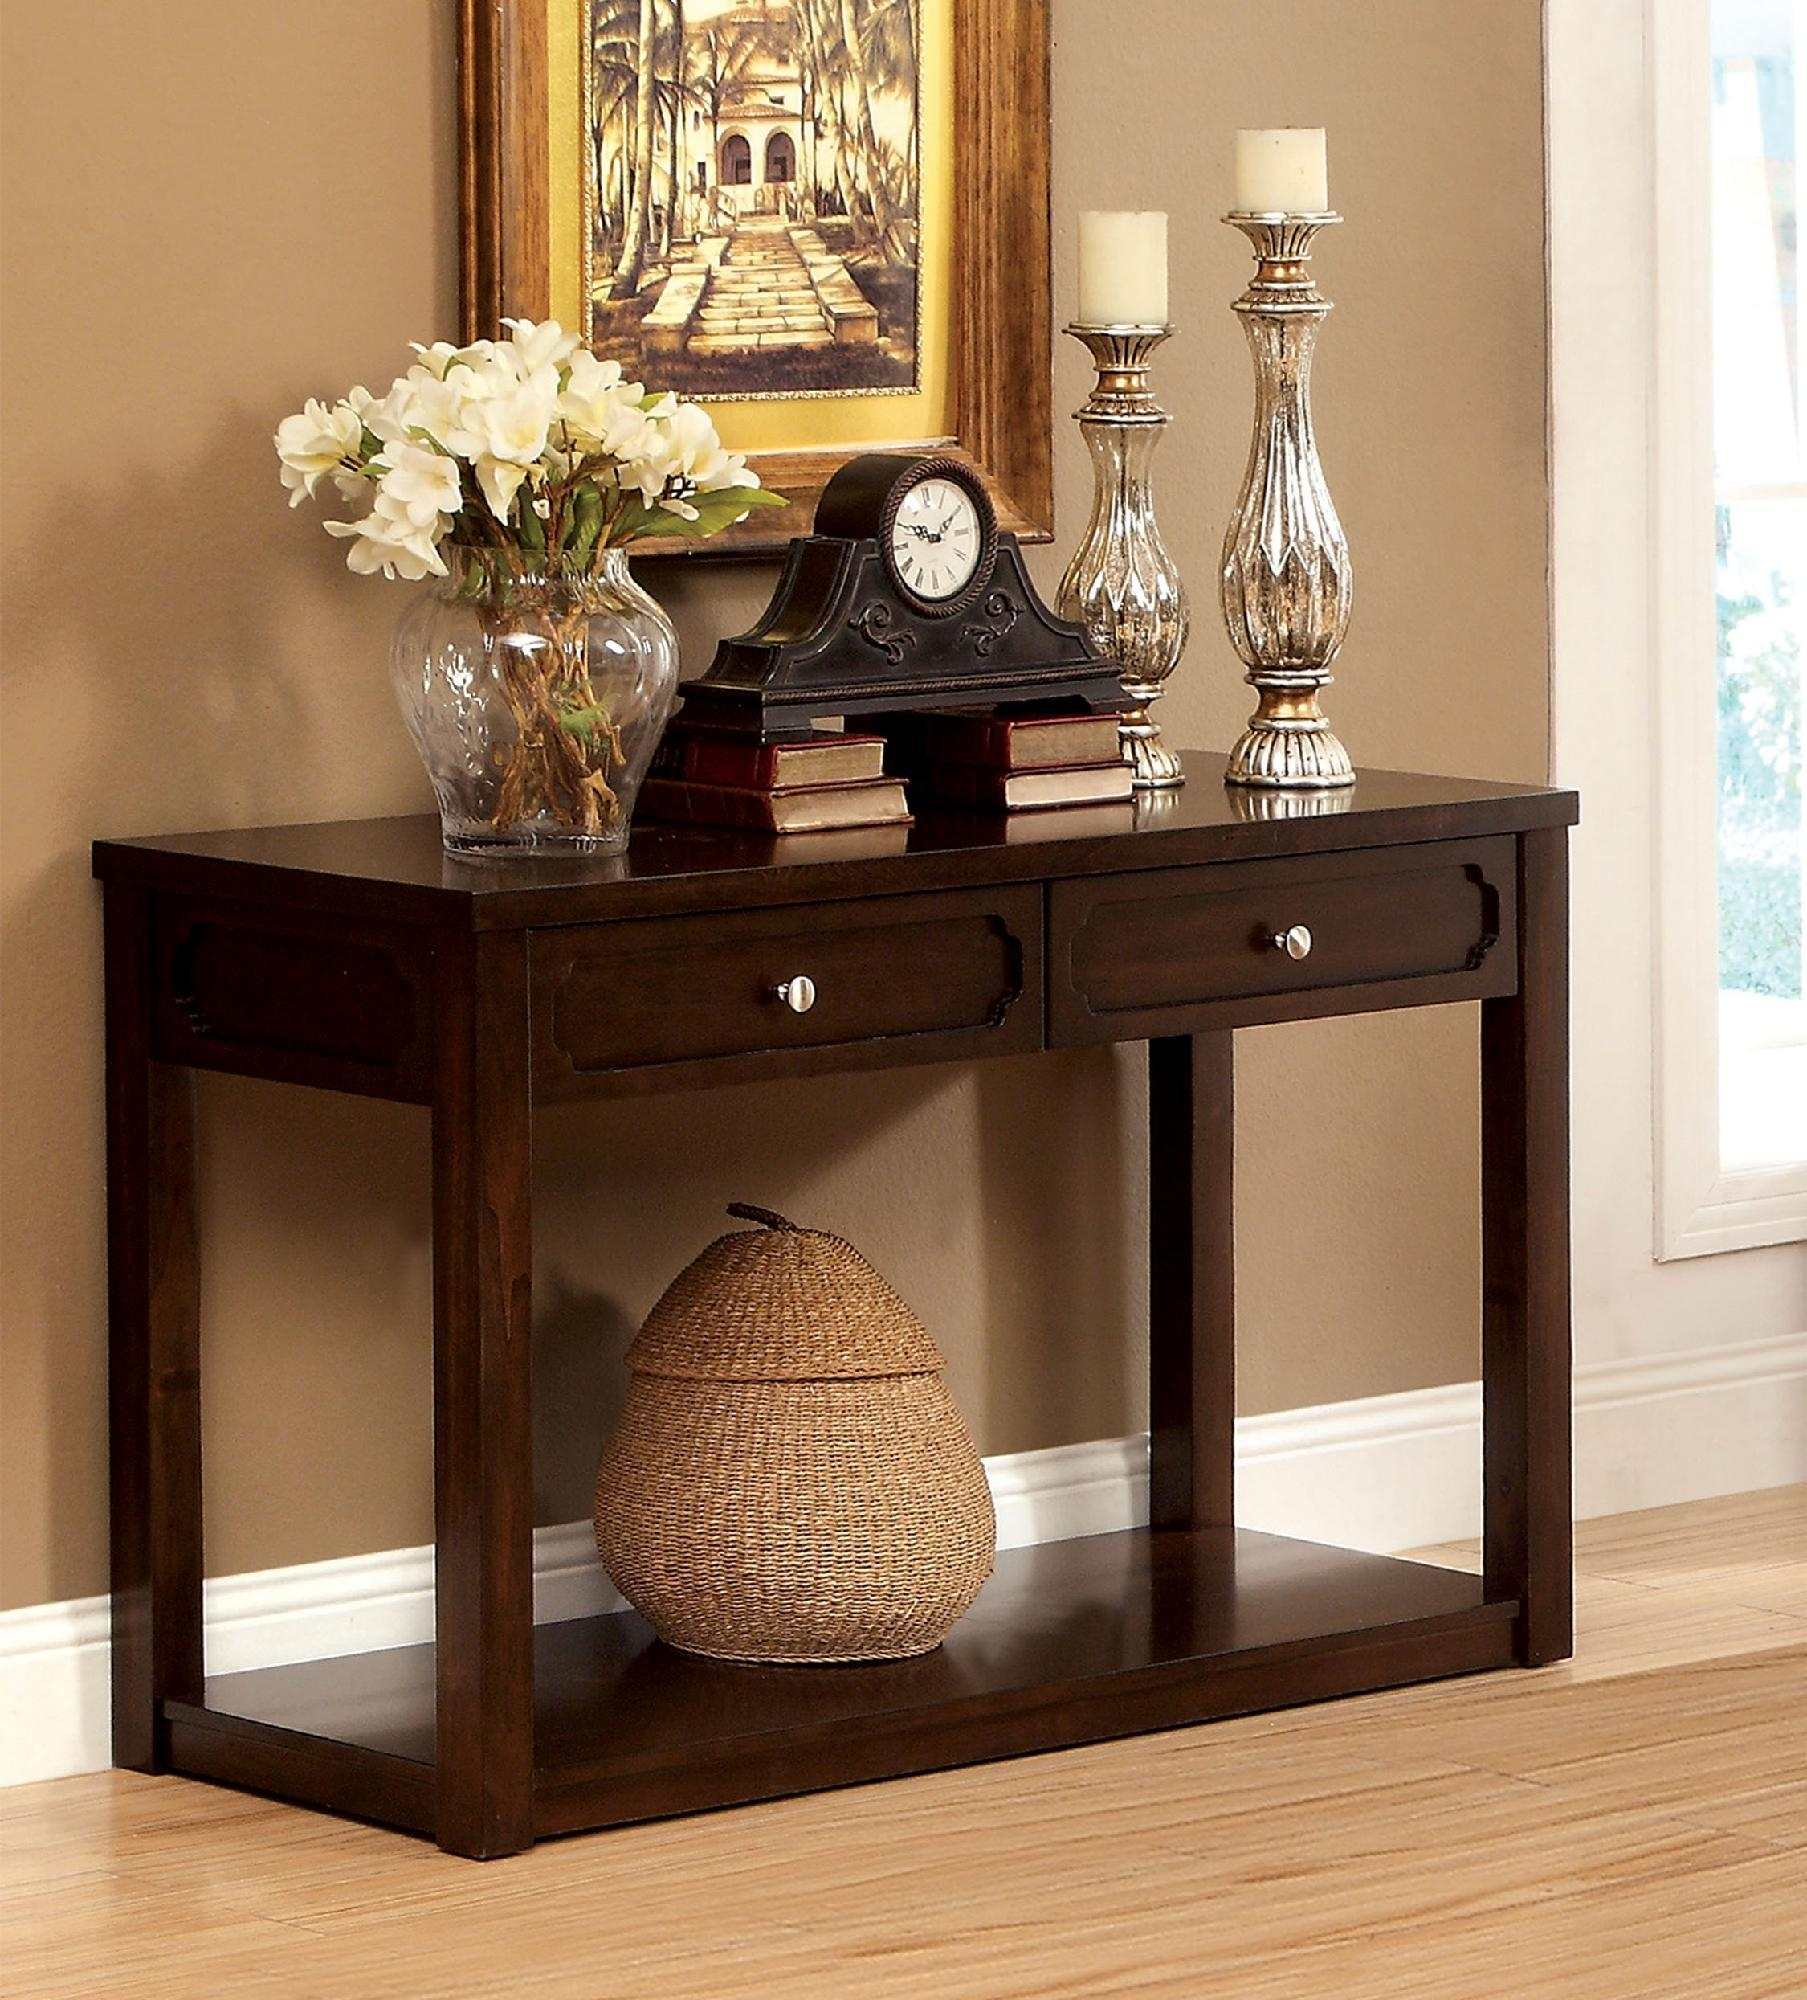 Cherry Wood Sofa Table With Ideas Hd Photos 13500 | Kengire Within Cherry Wood Sofa Tables (Image 6 of 20)